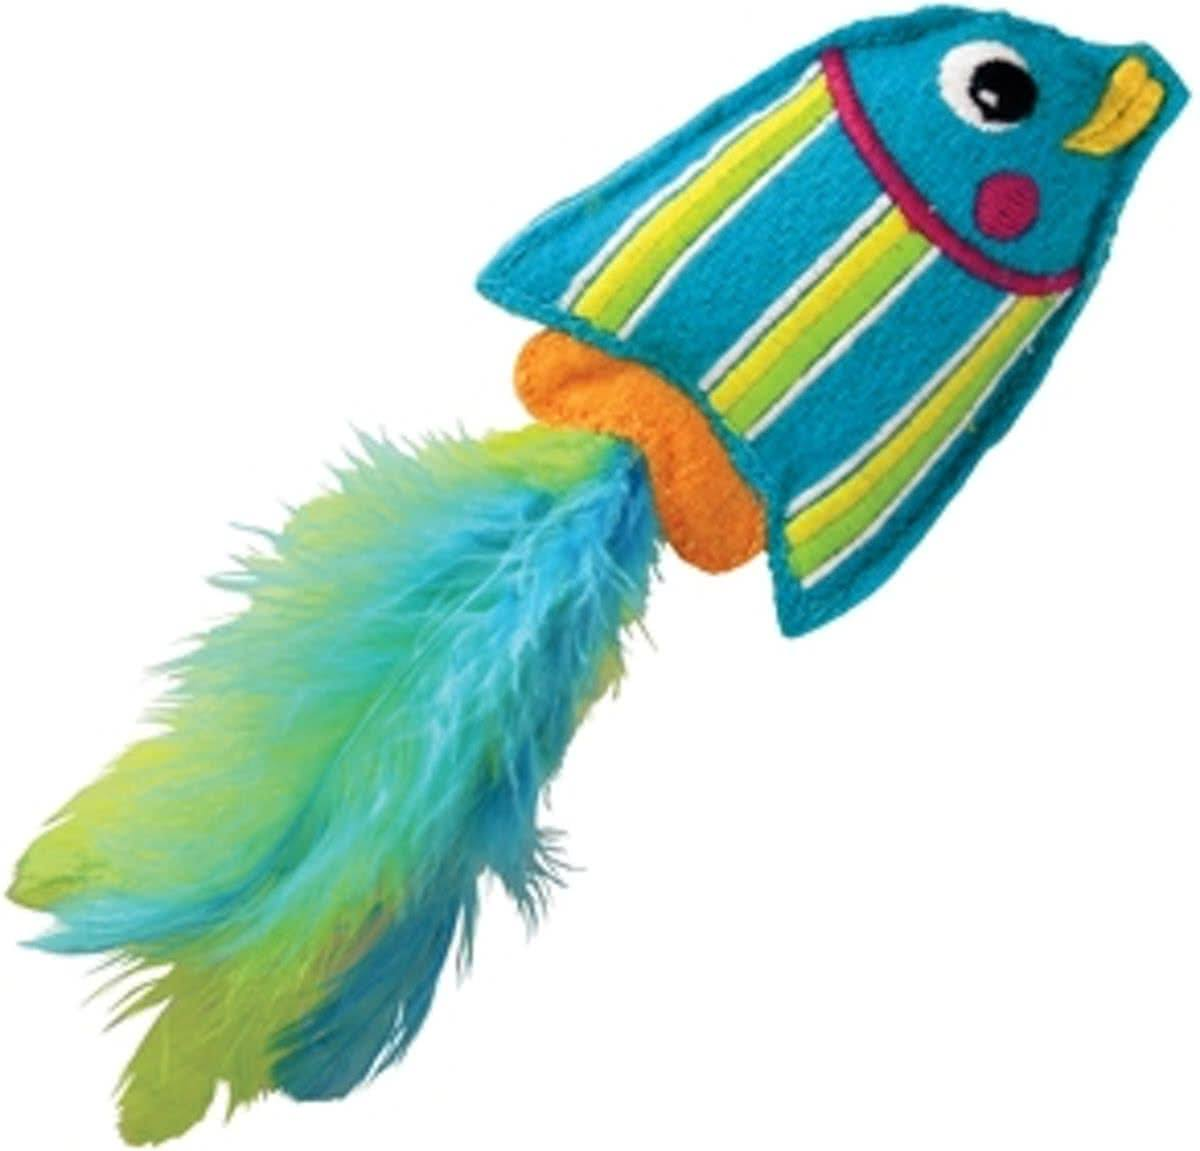 Kong Tropics Fish Catnip Toy - Blue